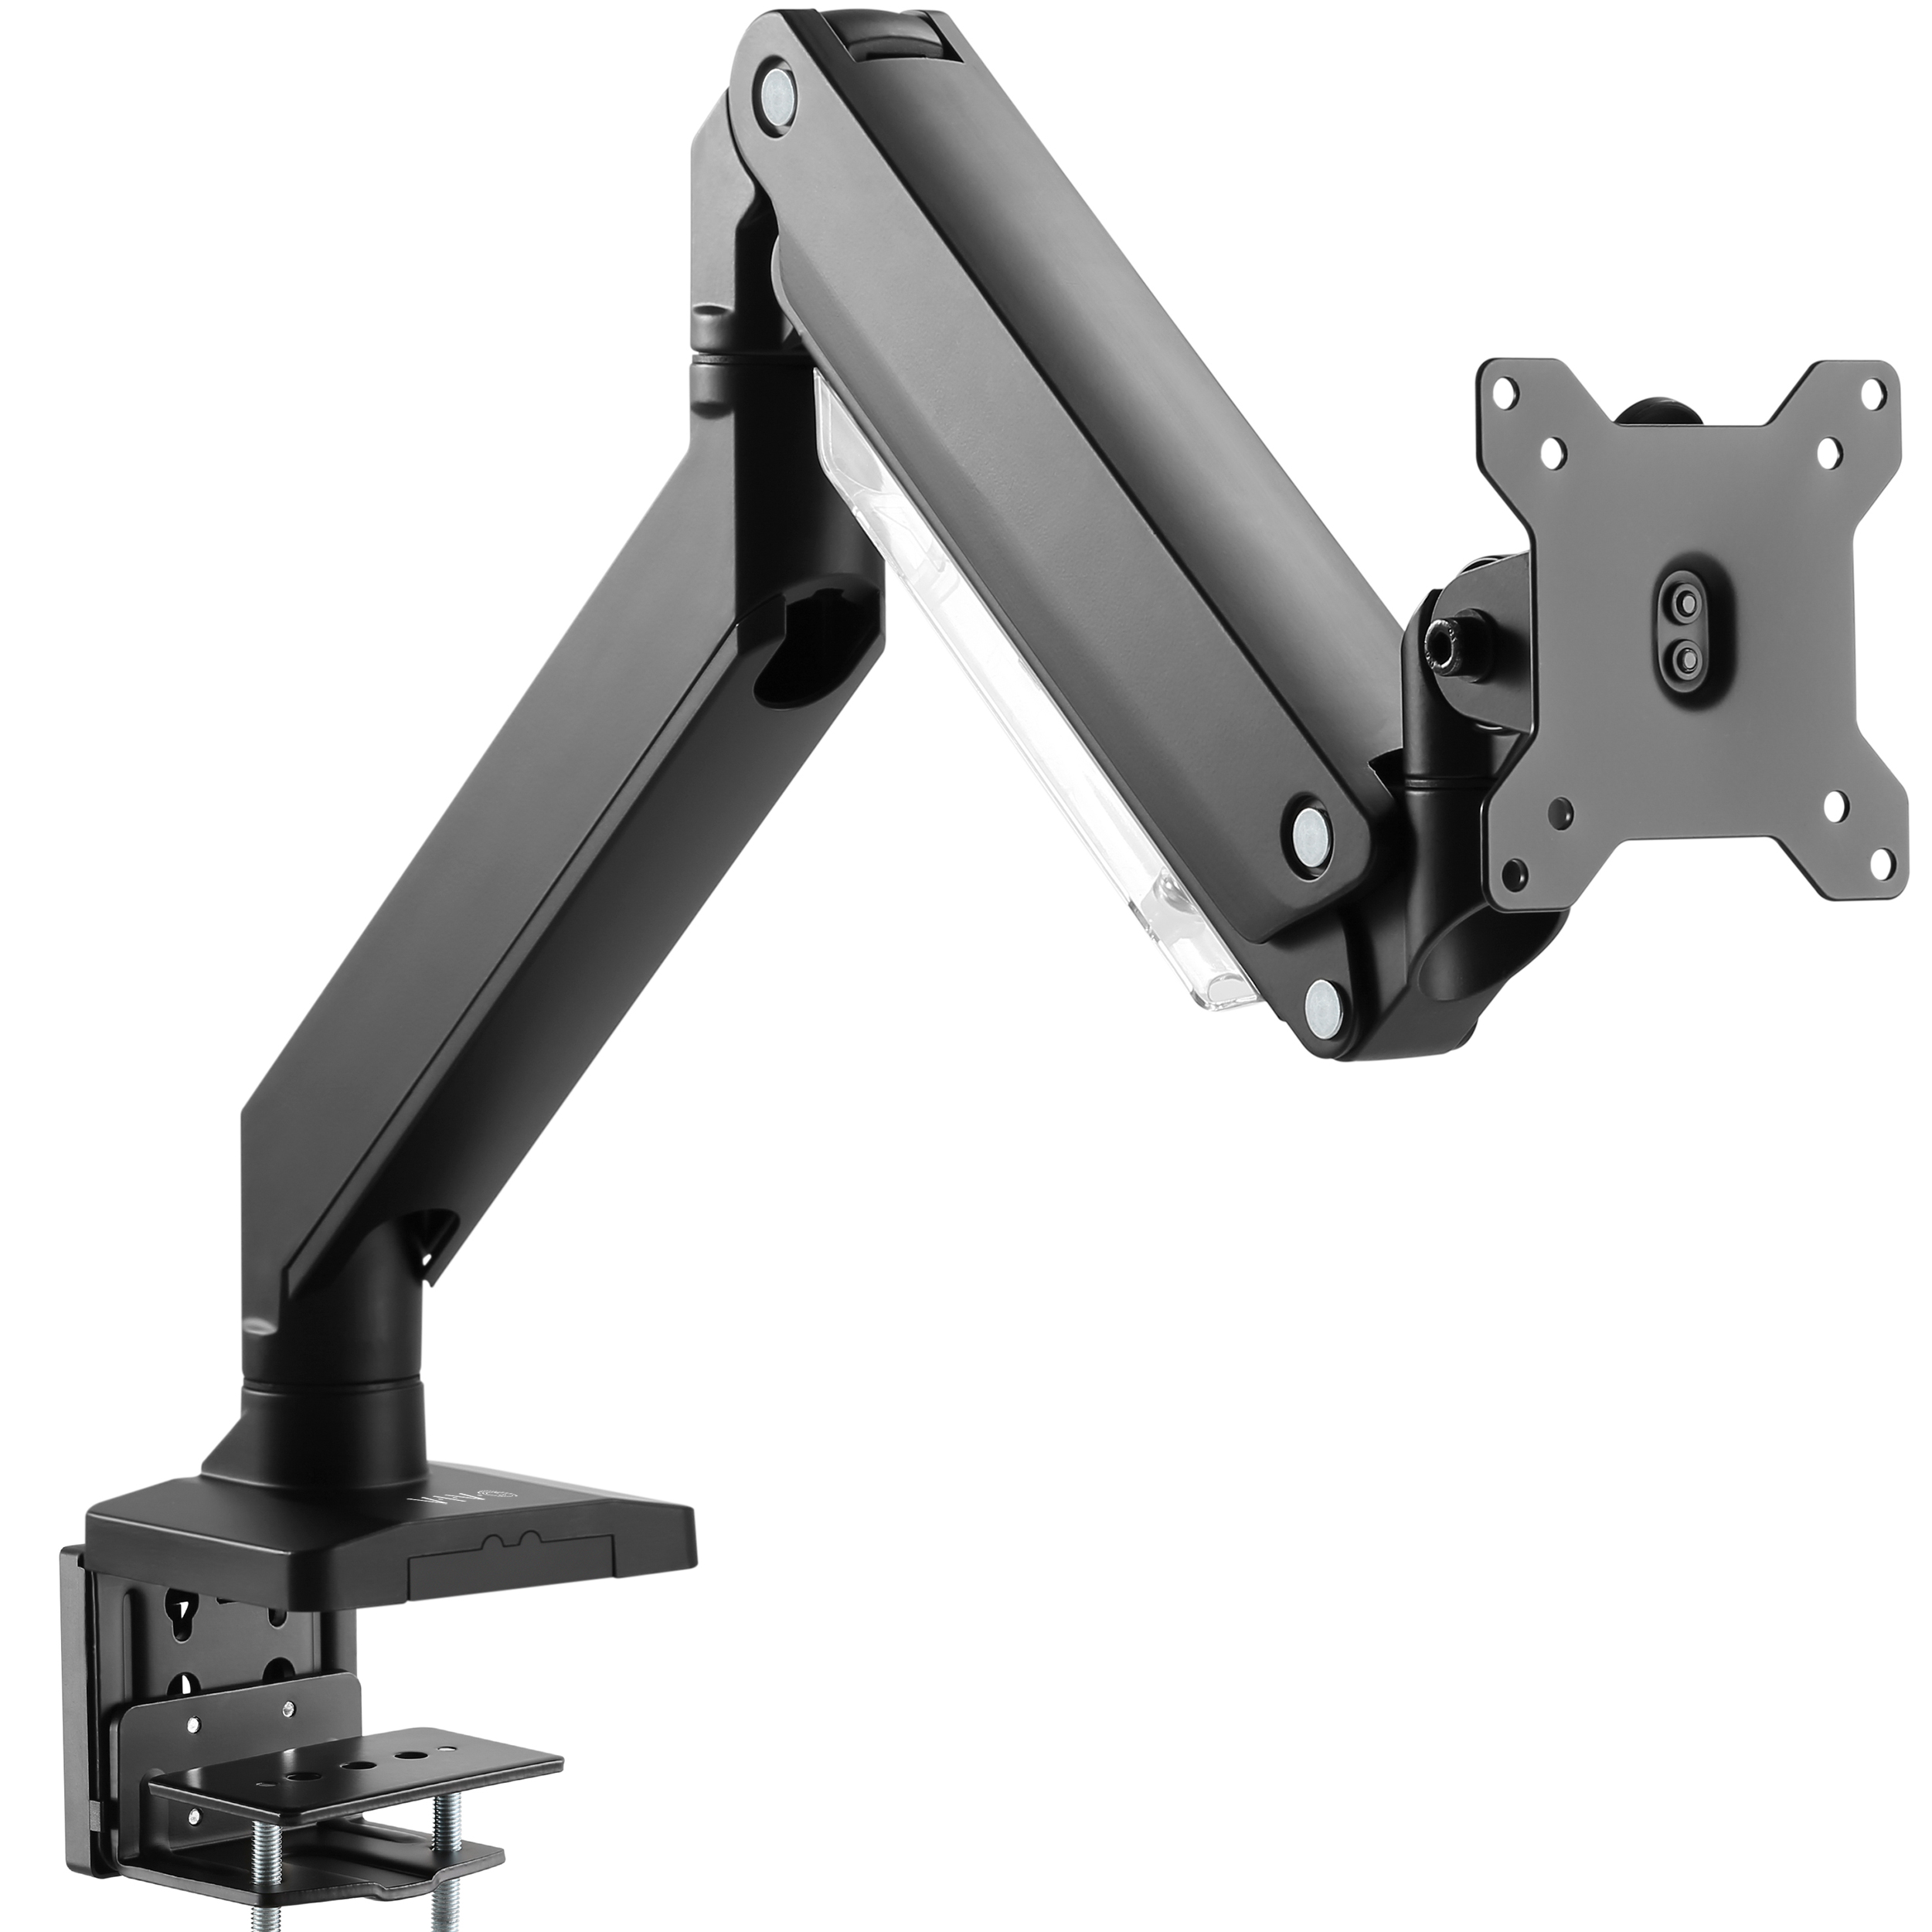 "VIVO Premium Aluminum Single Monitor Pneumatic Spring Arm Desk Mount Stand | Fits One Screen up to 32"" (STAND-V101G1)"